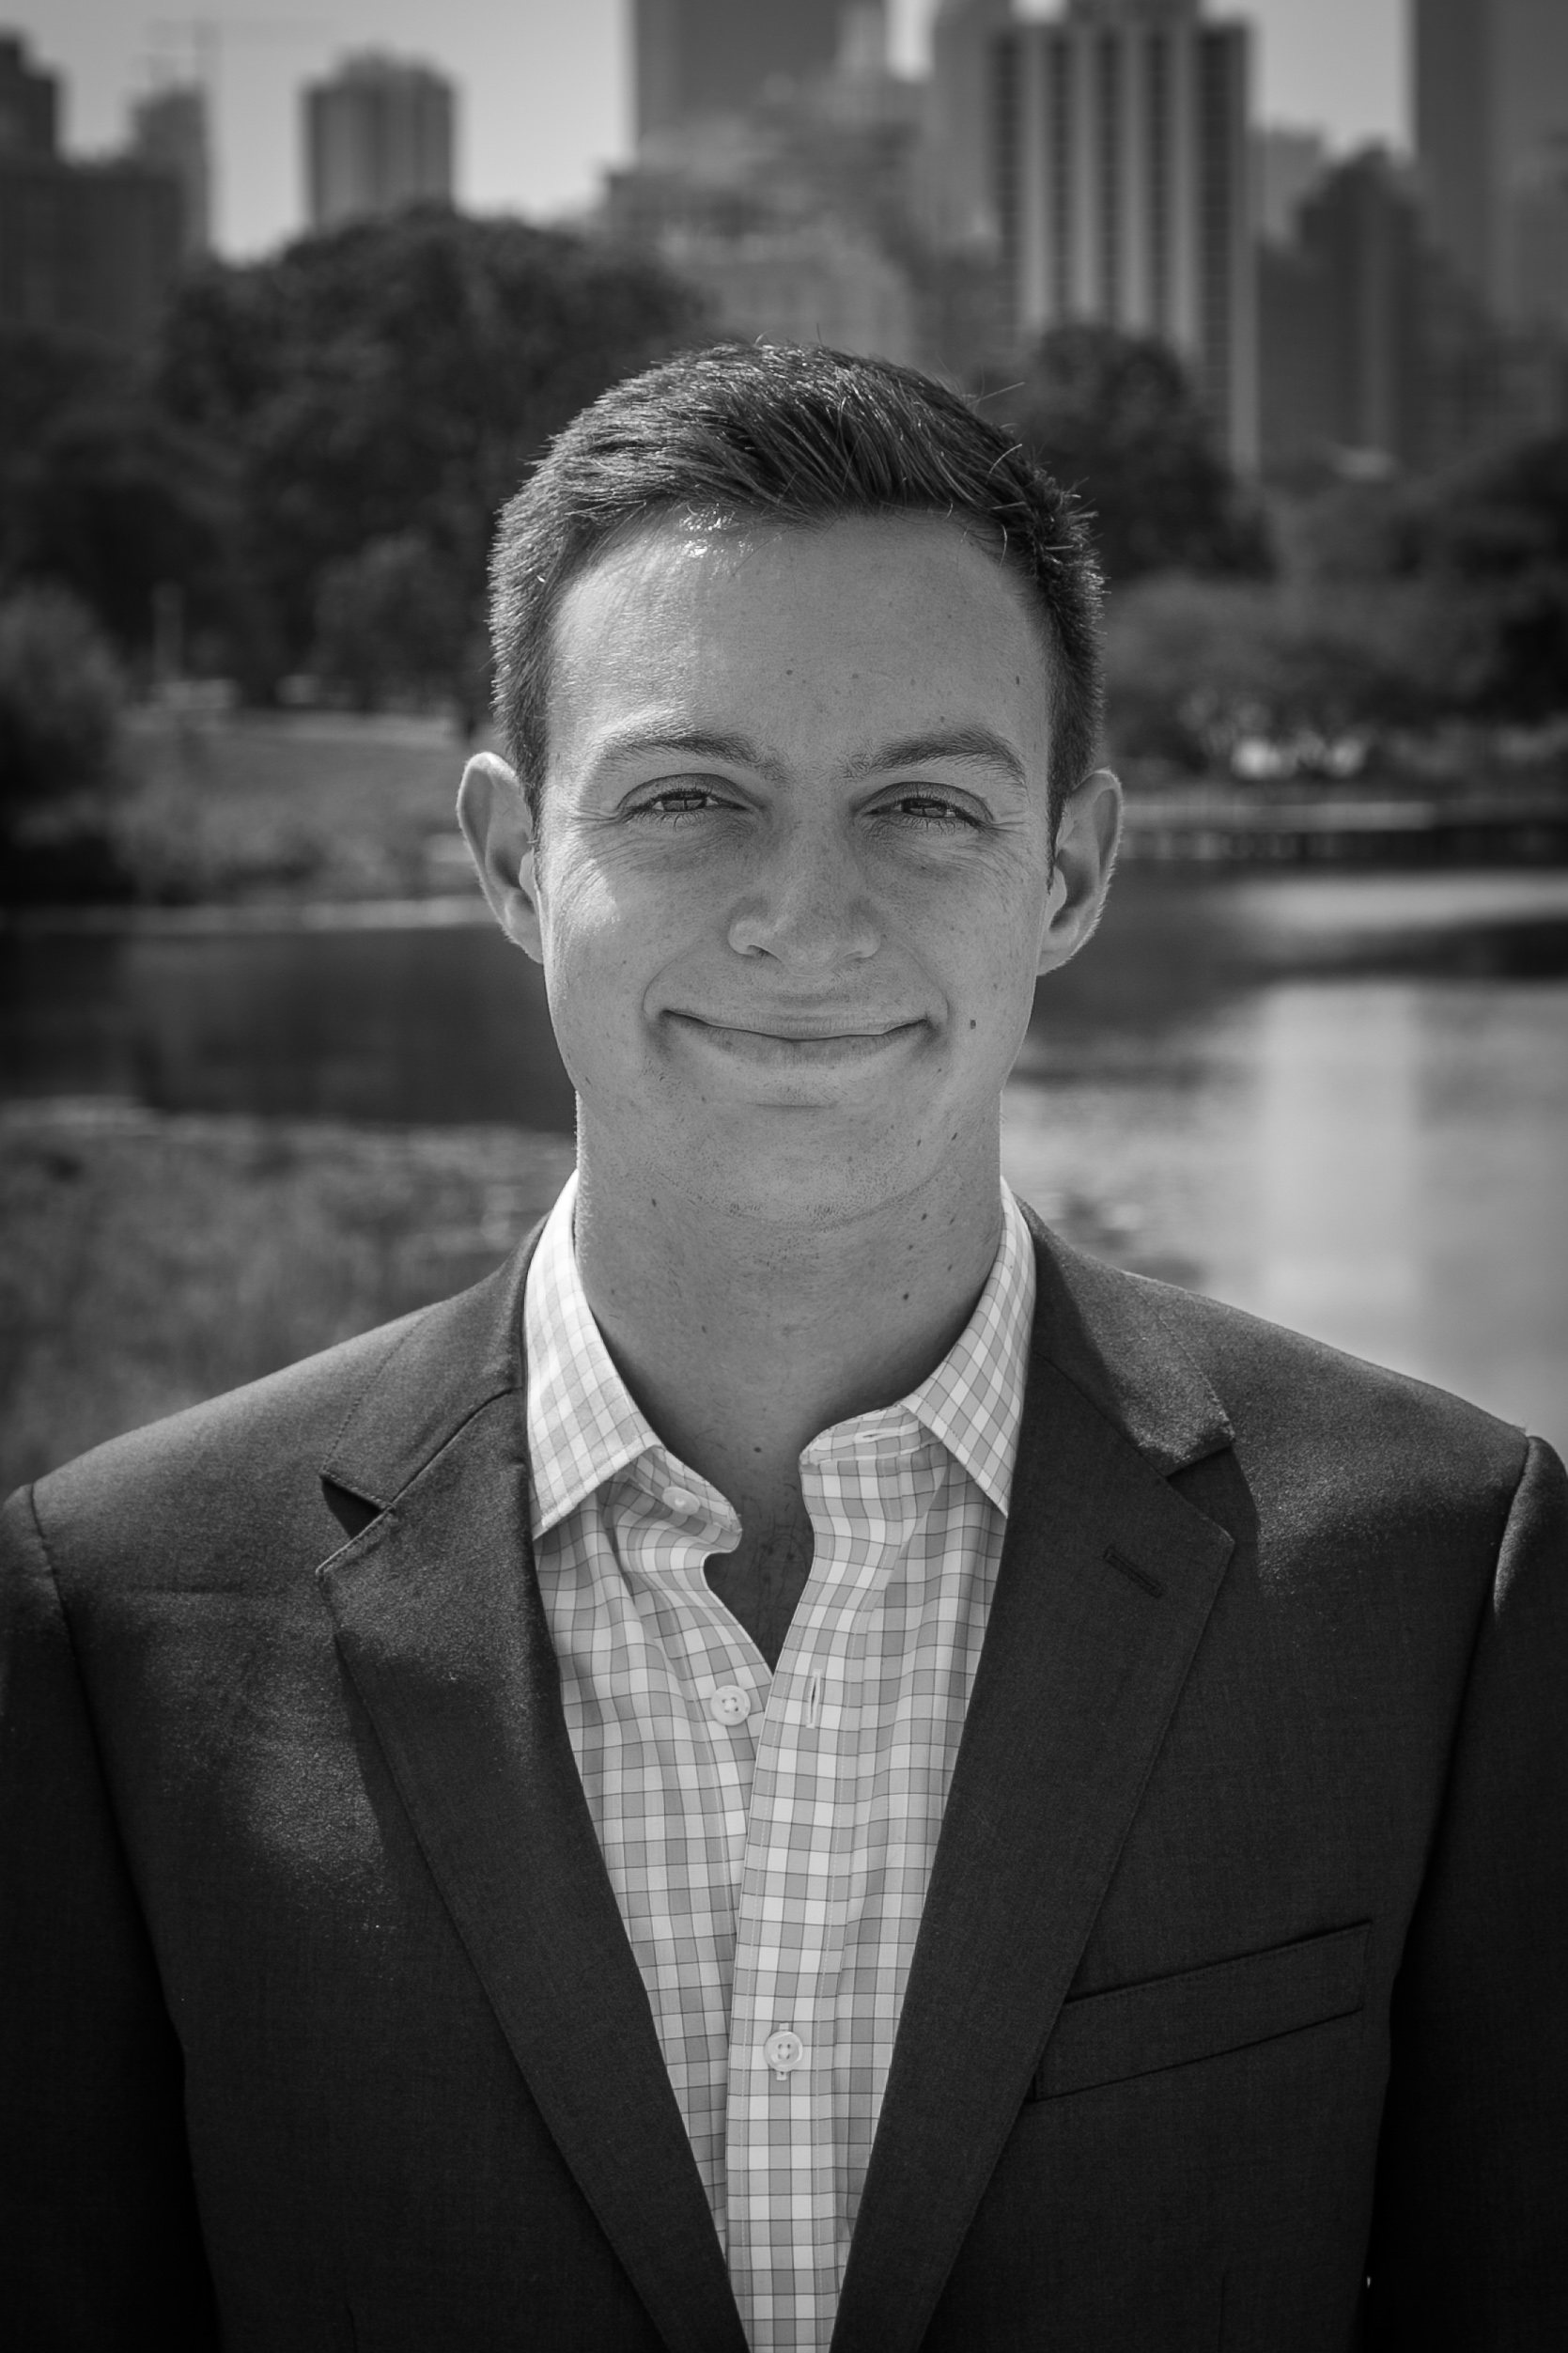 - James Lovett joined Coda Capital as a Summer Analyst in May of 2018. James is responsible for assisting the Coda Capital team in evaluating deal opportunities, as well as portfolio company special projects. Prior to joining Coda Capital, James worked for DreamFinders Homes in their marketing department where he worked on creating digital advertisements and managed social media. James is an incoming senior at the University of Richmond where he studies business administration with a concentration in Finance and Marketing. At Richmond he is the manager of the women's Field Hockey team and co-founder of the Club Track and Field Team.